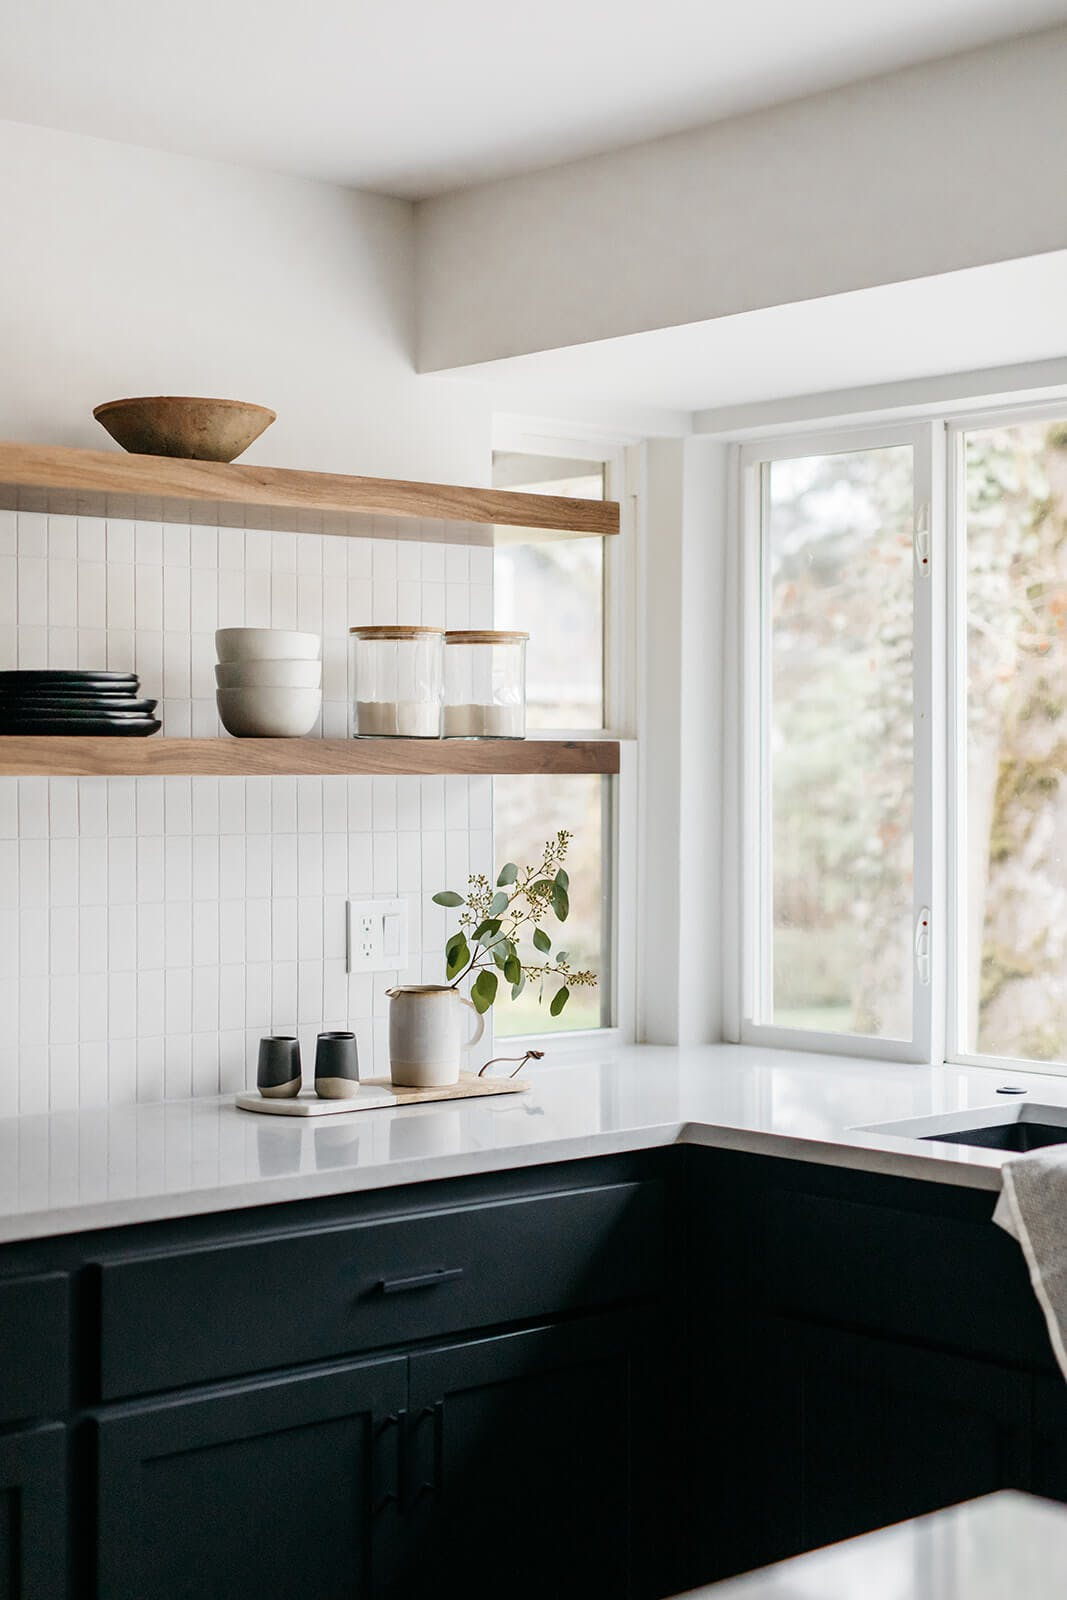 Kitchen window and shelves